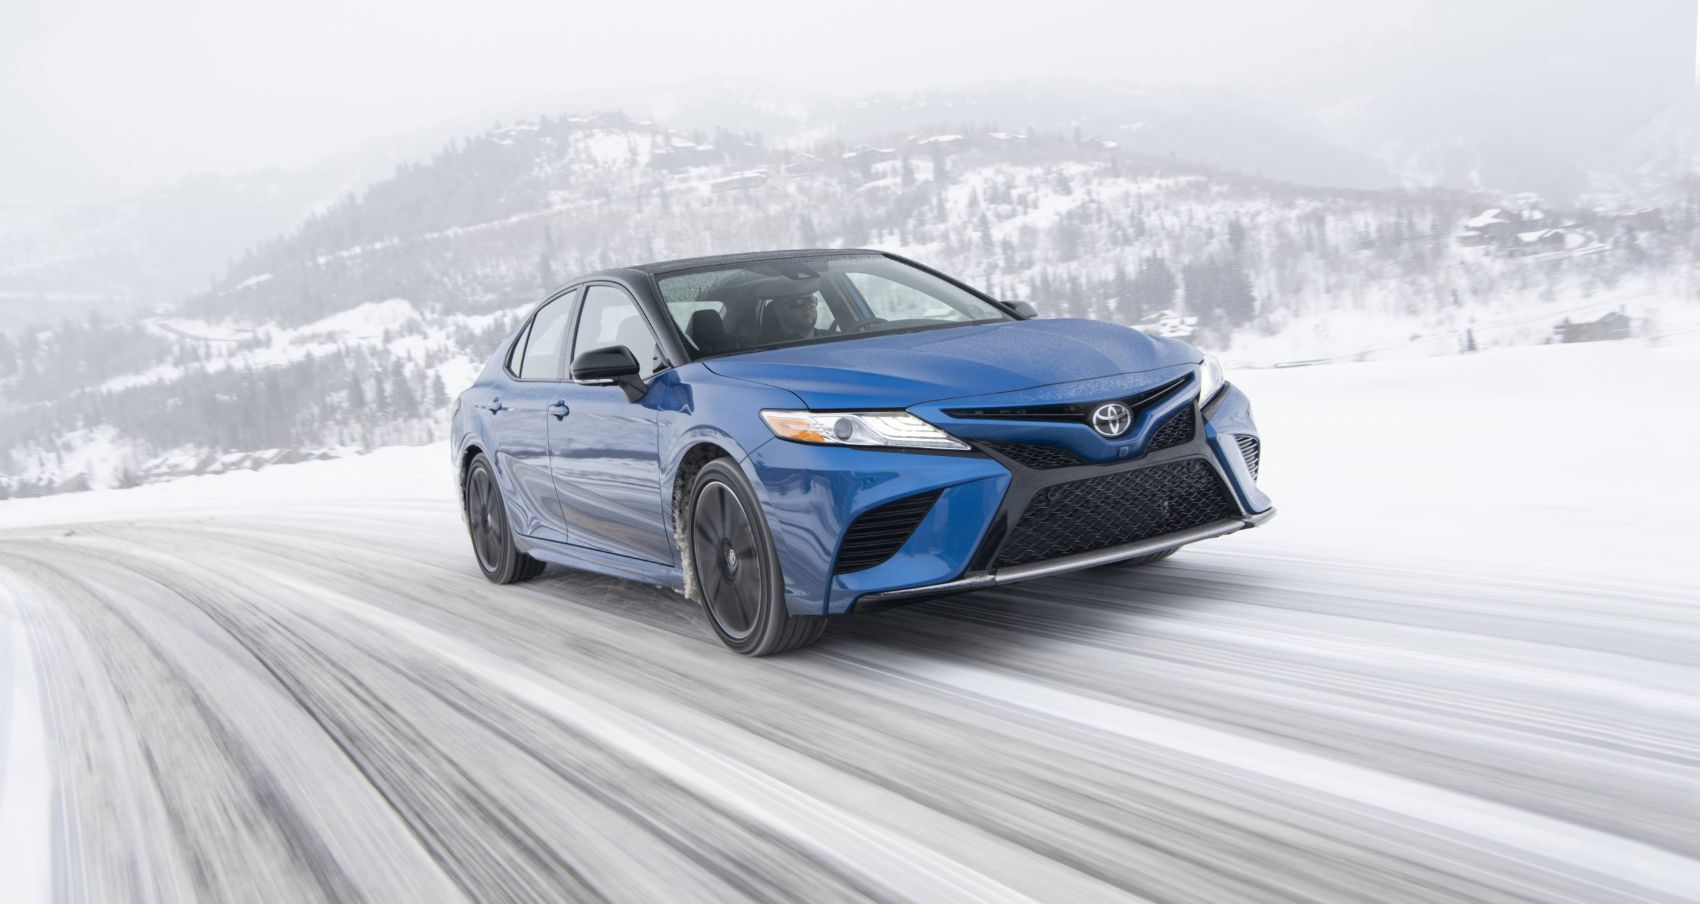 2020 Toyota Camry XSE with all-wheel drive. The all-wheel drive components account for an additional 165 lbs. versus a front-wheel drive Camry. Photo: Toyota Motor Sales, U.S.A., Inc.